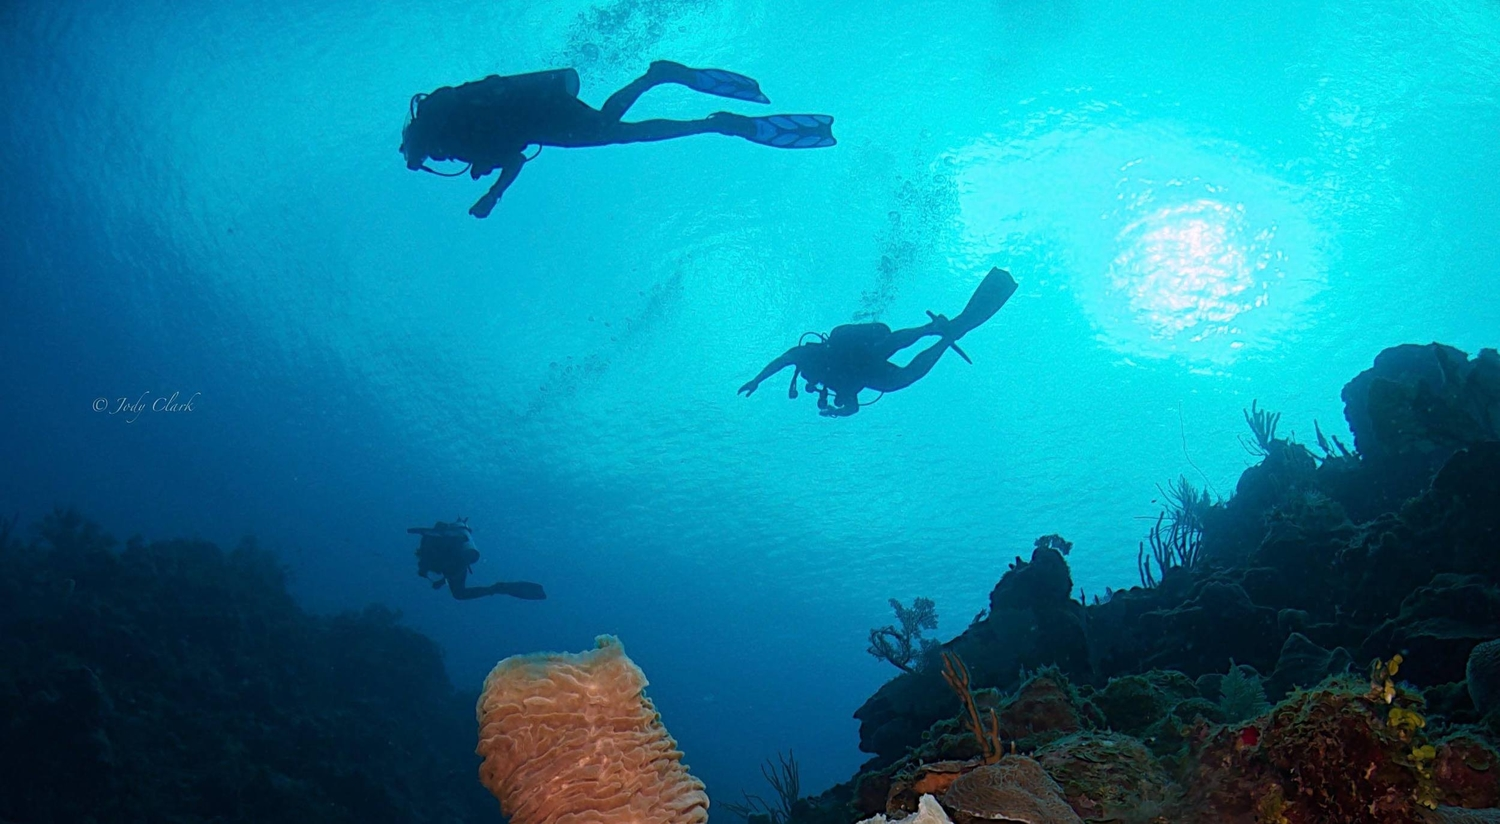 adf52d7499 Roatan Divers | The best in boutique style scuba diving on Roatan